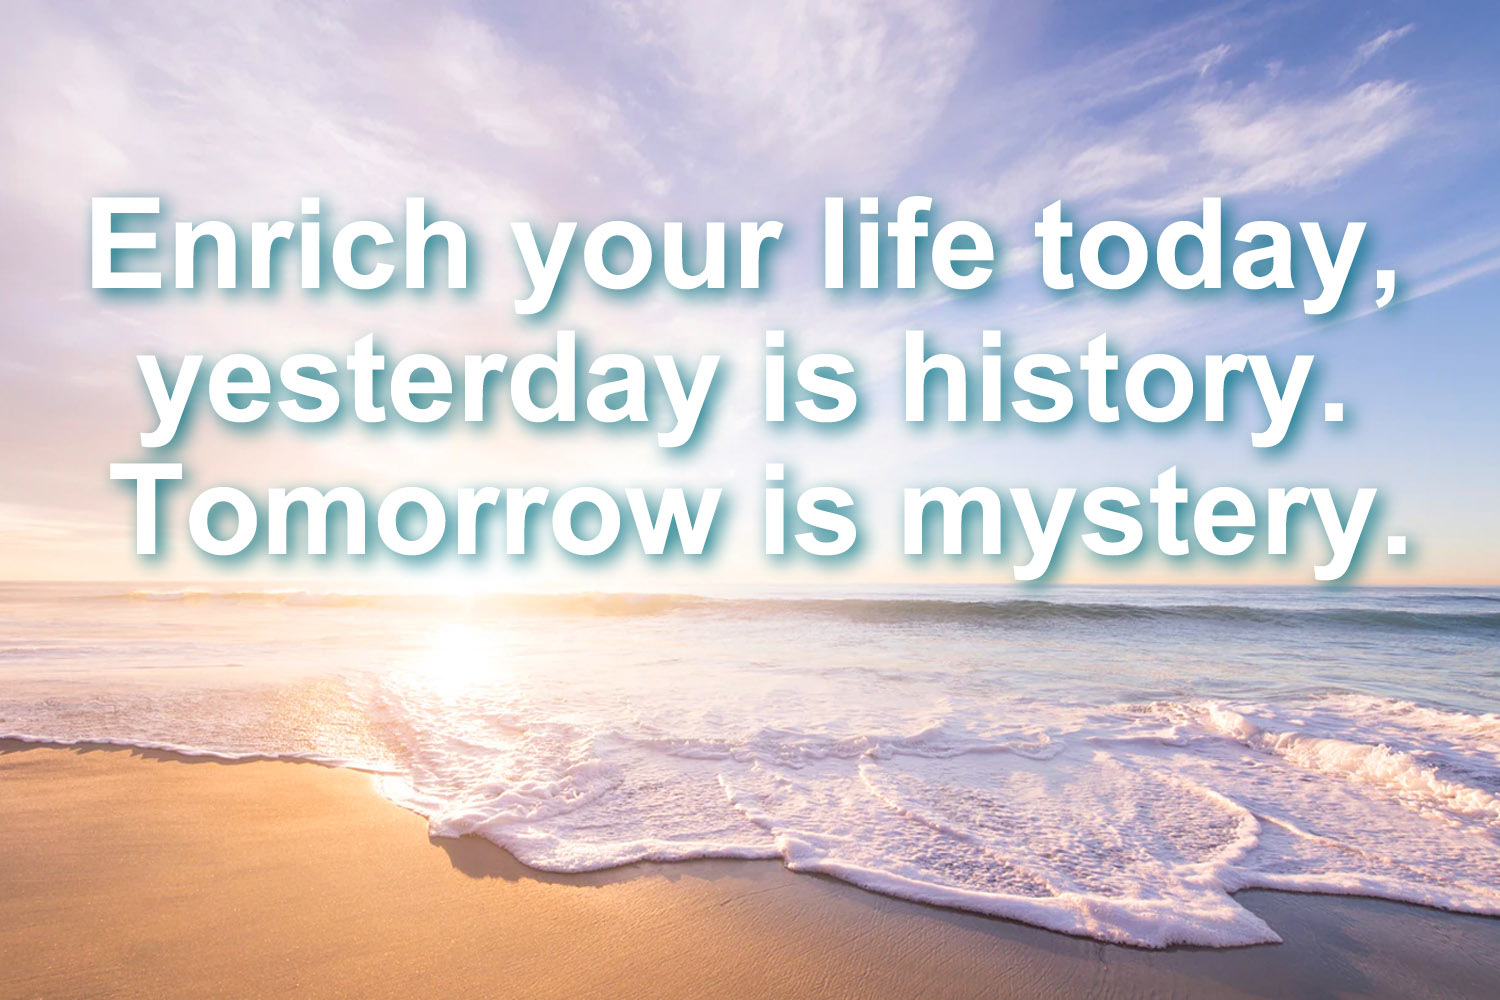 Enrich your life today, yesterday is history. Tomorrow is mystery.